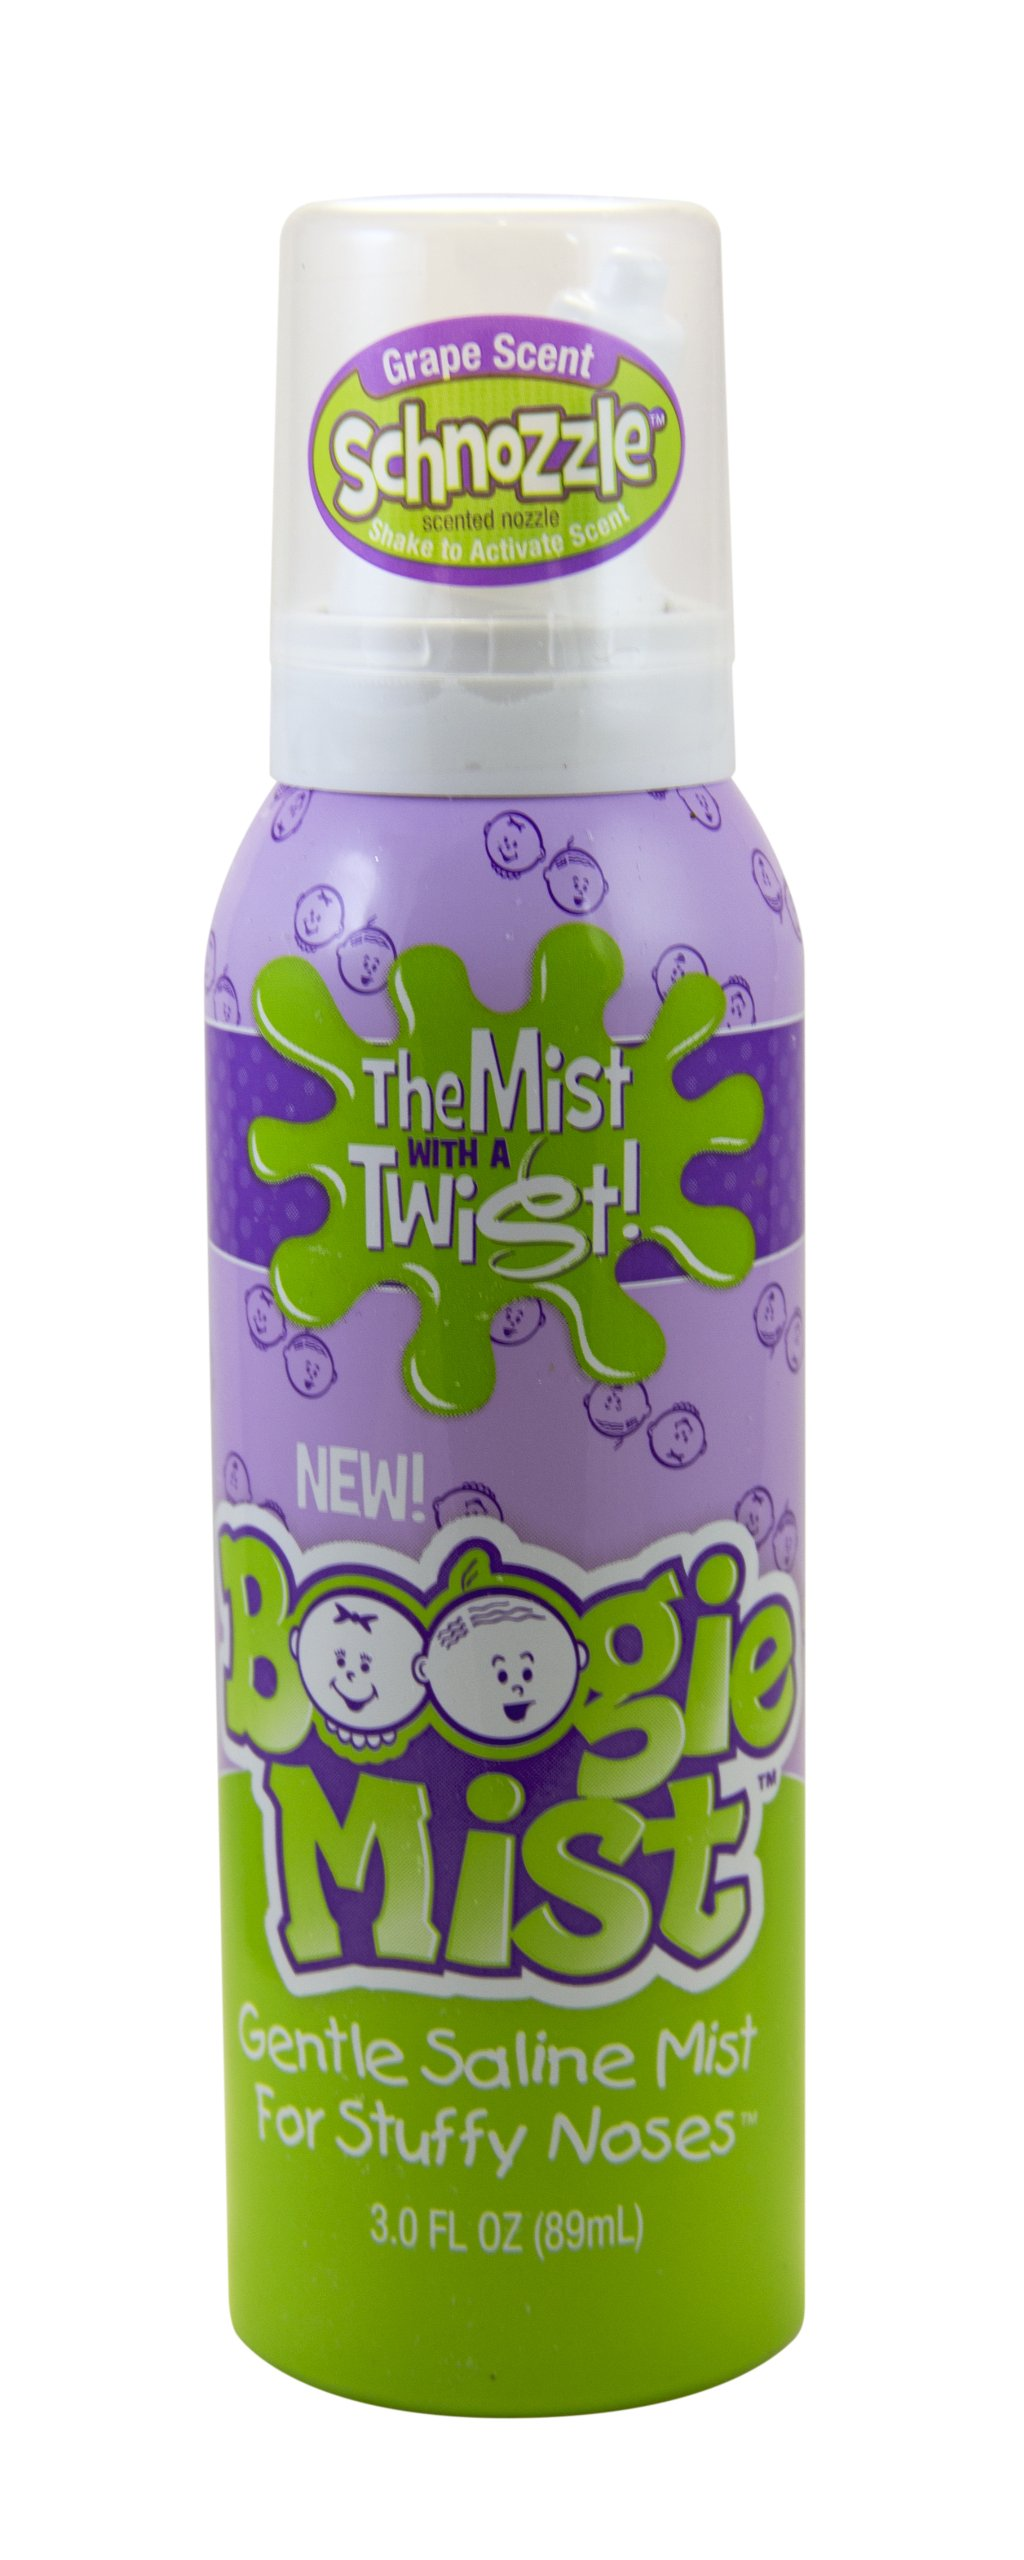 Boogie Mist Sterile Saline Nasal Spray for Baby and Kids Sensitive Noses Clear Congestion, Grape Scent, 3.1 Ounce (89g)